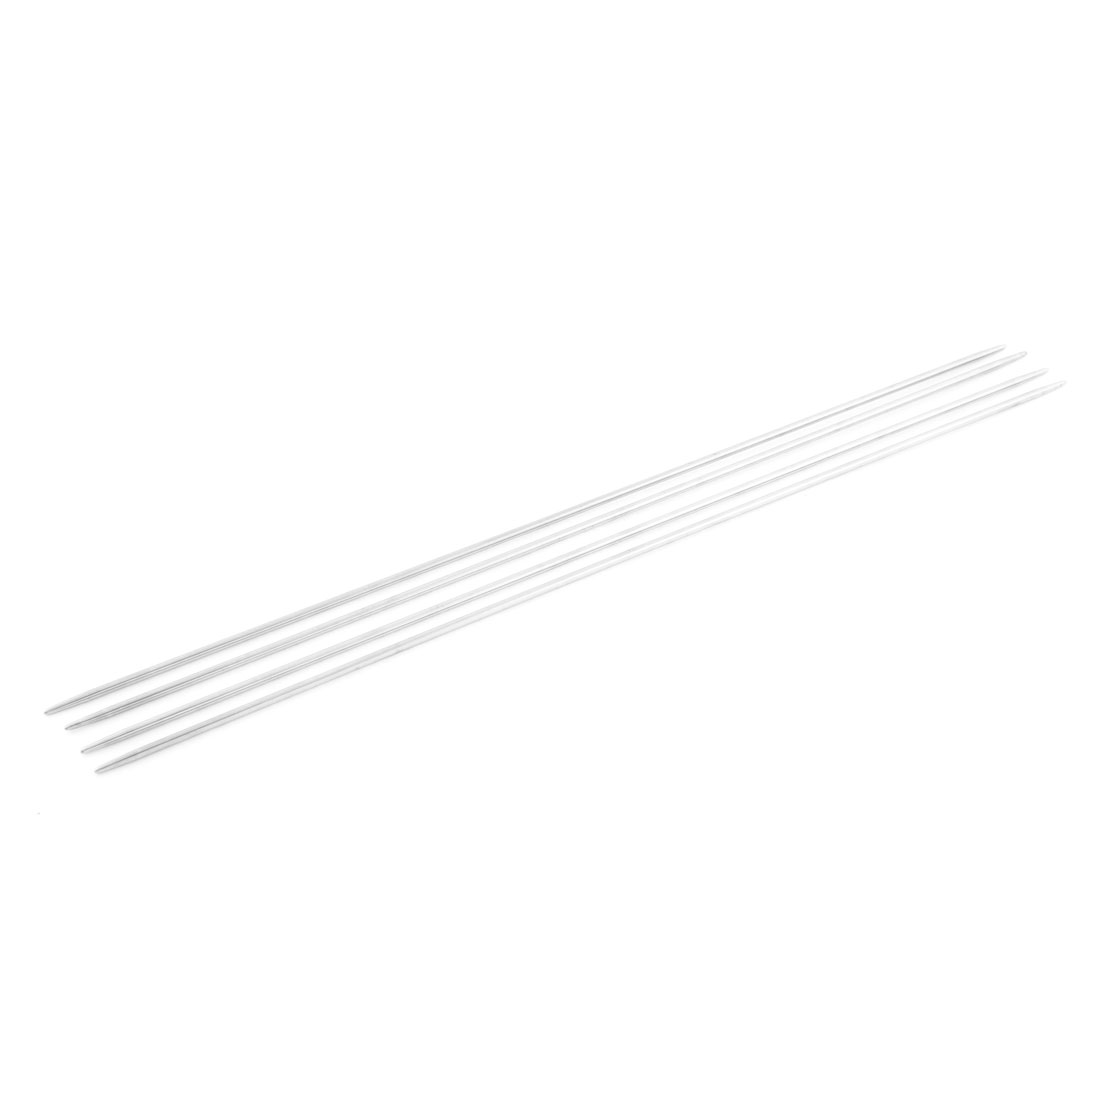 Double Point Stainless Steel Hollow Scarf Knitting Needles 4 Pcs Silver Tone